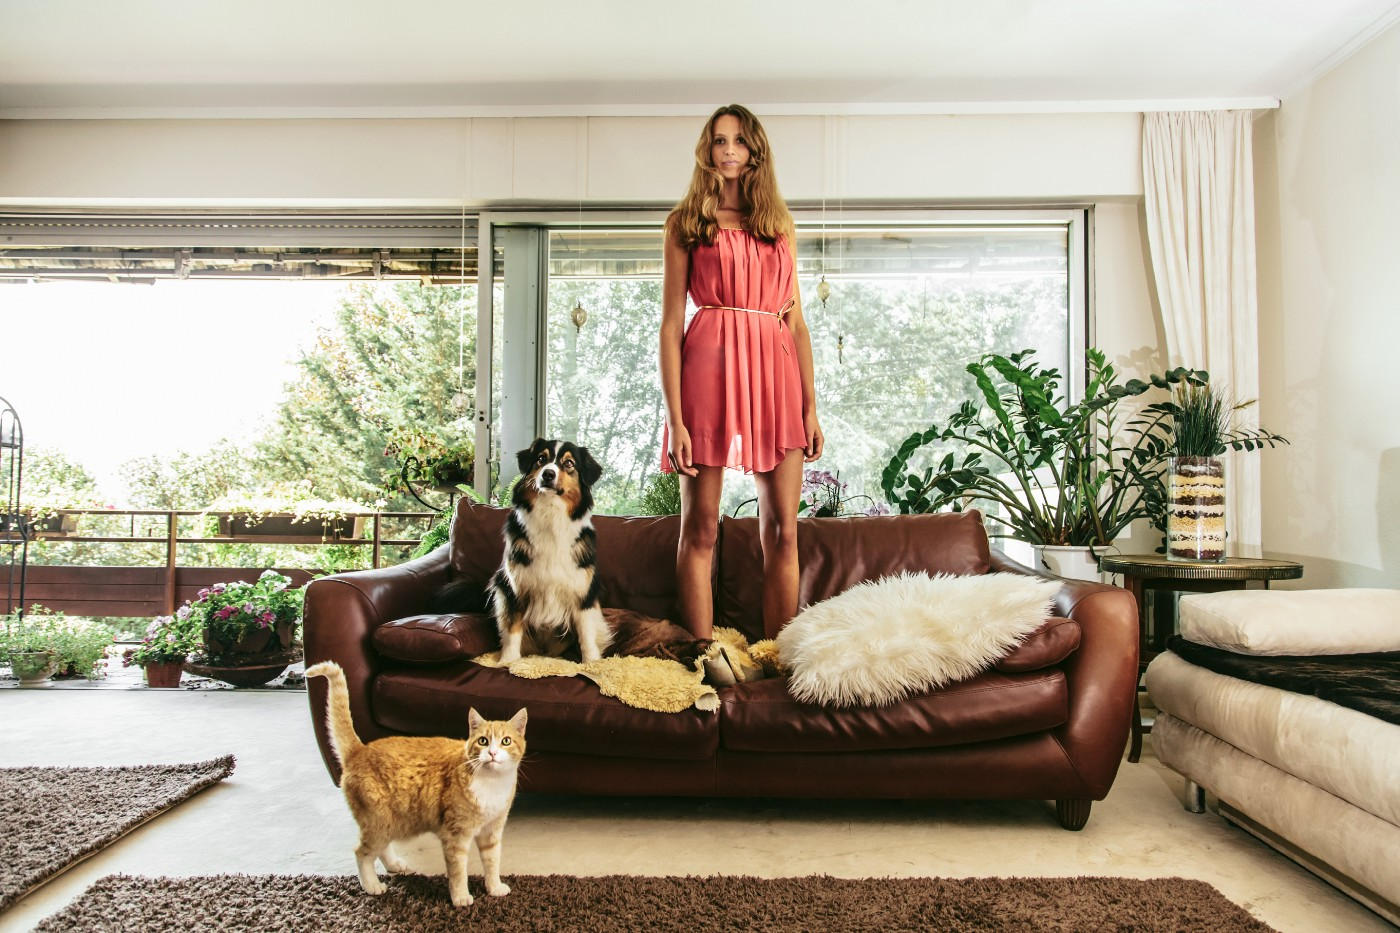 Woman standing on couch, watching TV with her pets.